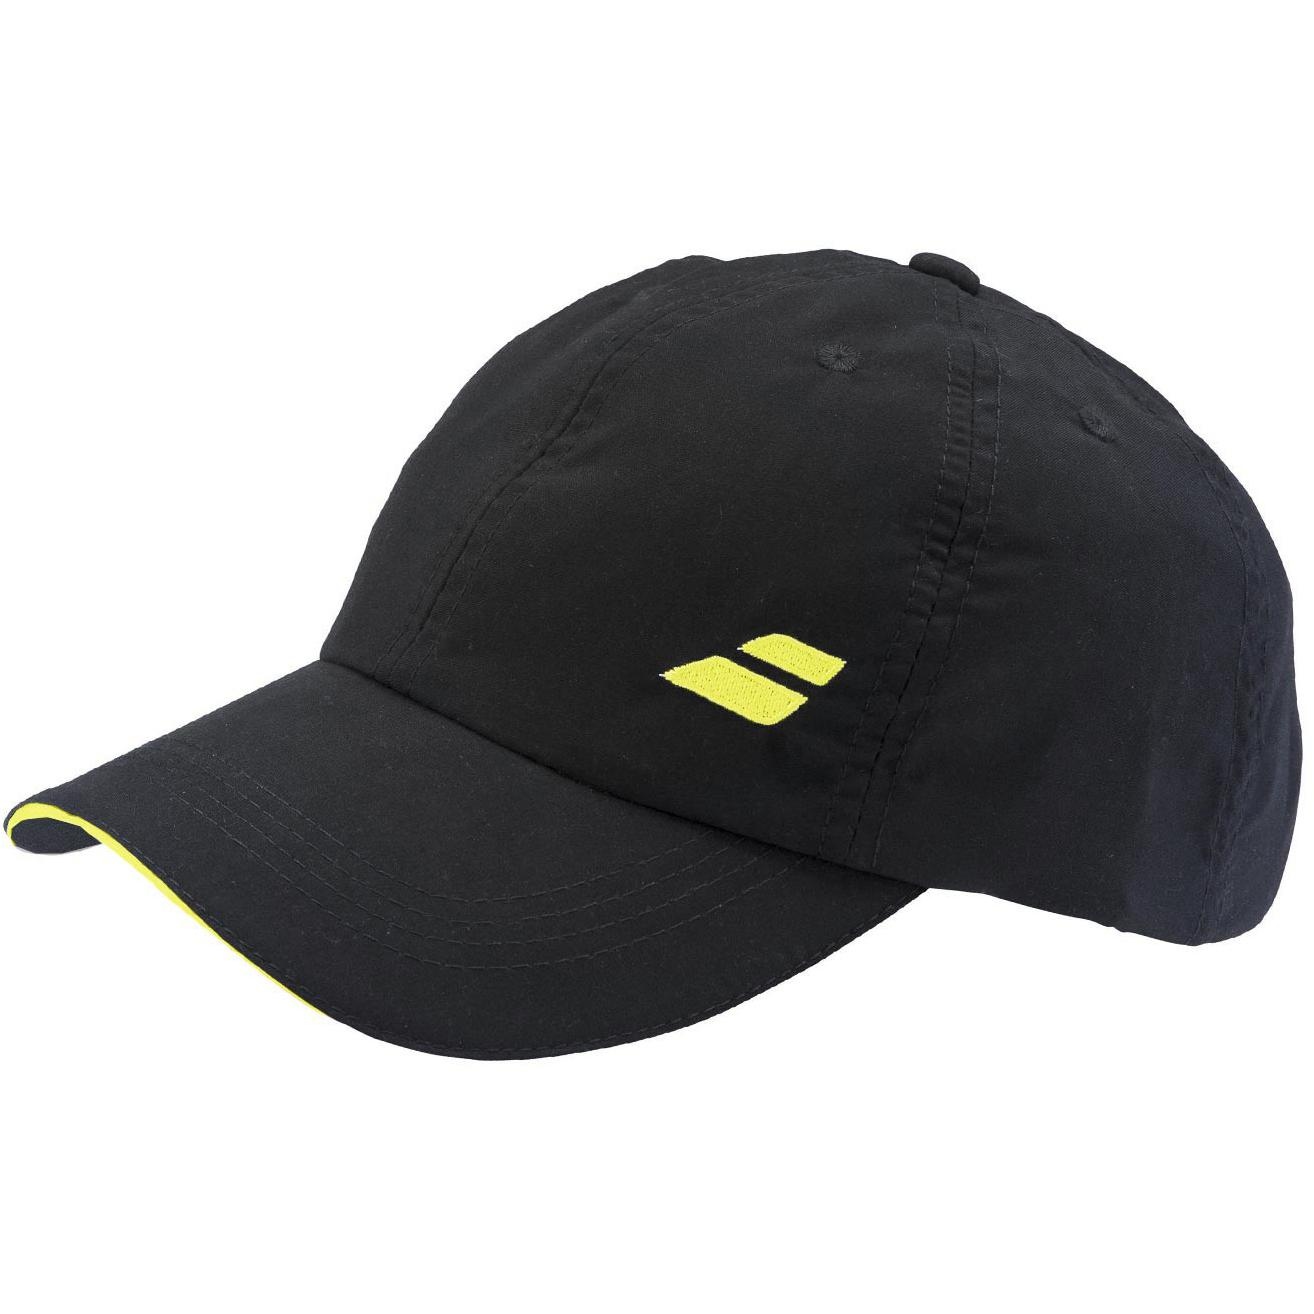 babolat adult basic logo cap 2018 blackyellow